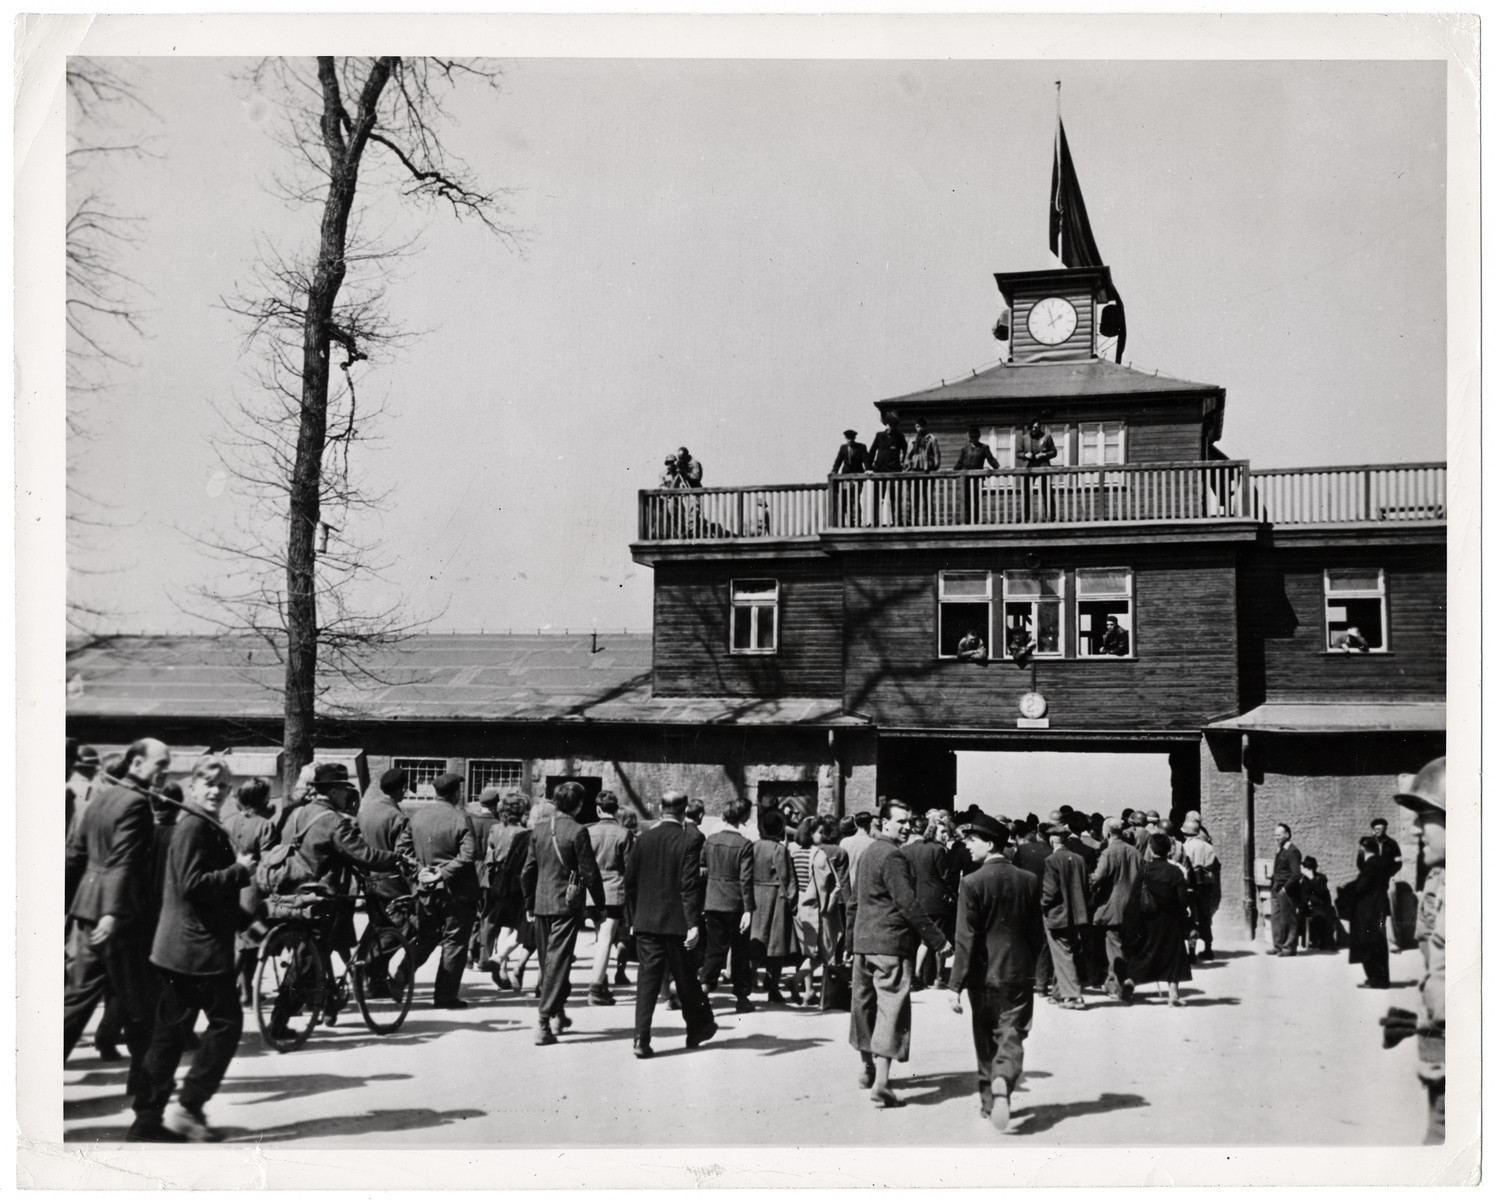 "Original caption: ""German civilians, selected from all walks of life in nearby Weimar, are marched into Camp Buchenwald. Escorted by military policemmen of the Third U.S. Army, the civilians were forced to witness all the evidence of Nazi atrocities in the camp. The black flag atop the tower was hung because of President Roosevelt's death.   The Buchenwald concentration camp, on a small hill about four miles outside Weimar, was captured April 13, 1945, by troops of the Third U.S. Army. Approximately 21,000 inmates ---- Russian, Polish, French, Italian and Czechoslovakian --- were liberated. They were the living dead. Some clustered weakly about the first Americans to enter the camp and died as they spoke. Children had convict numbers tattooed on the stick-like arms. In 10 years, more than 70,000 persons were starved and butchered in this camp. Nazi scientists had a field of death to pick from at Buchenwald for their experiments. A crematorium was operated until the German ran out of coal, then the bodies were stacked up in two rows like cordwood. One of the barracks where prisoners were quartered until they died had once stabled 80 horses. The Germans put 1,200 men in it, five to bunk. Every 24 hours, prisoners received a small piece of brown bread, a little margerine and one scant portion of stew."""